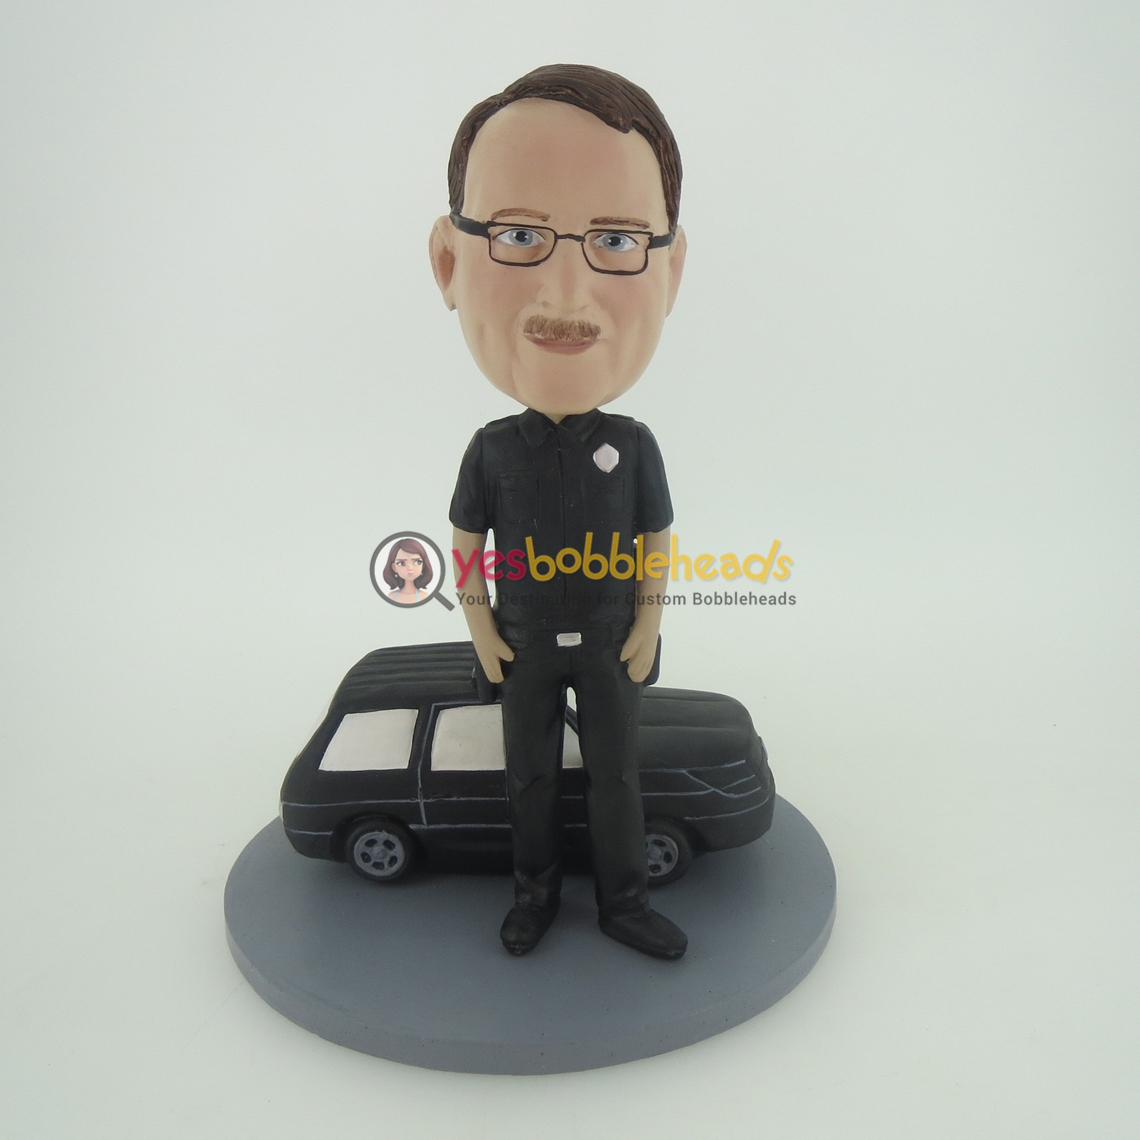 Picture of Custom Bobblehead Doll: Man And Black Car